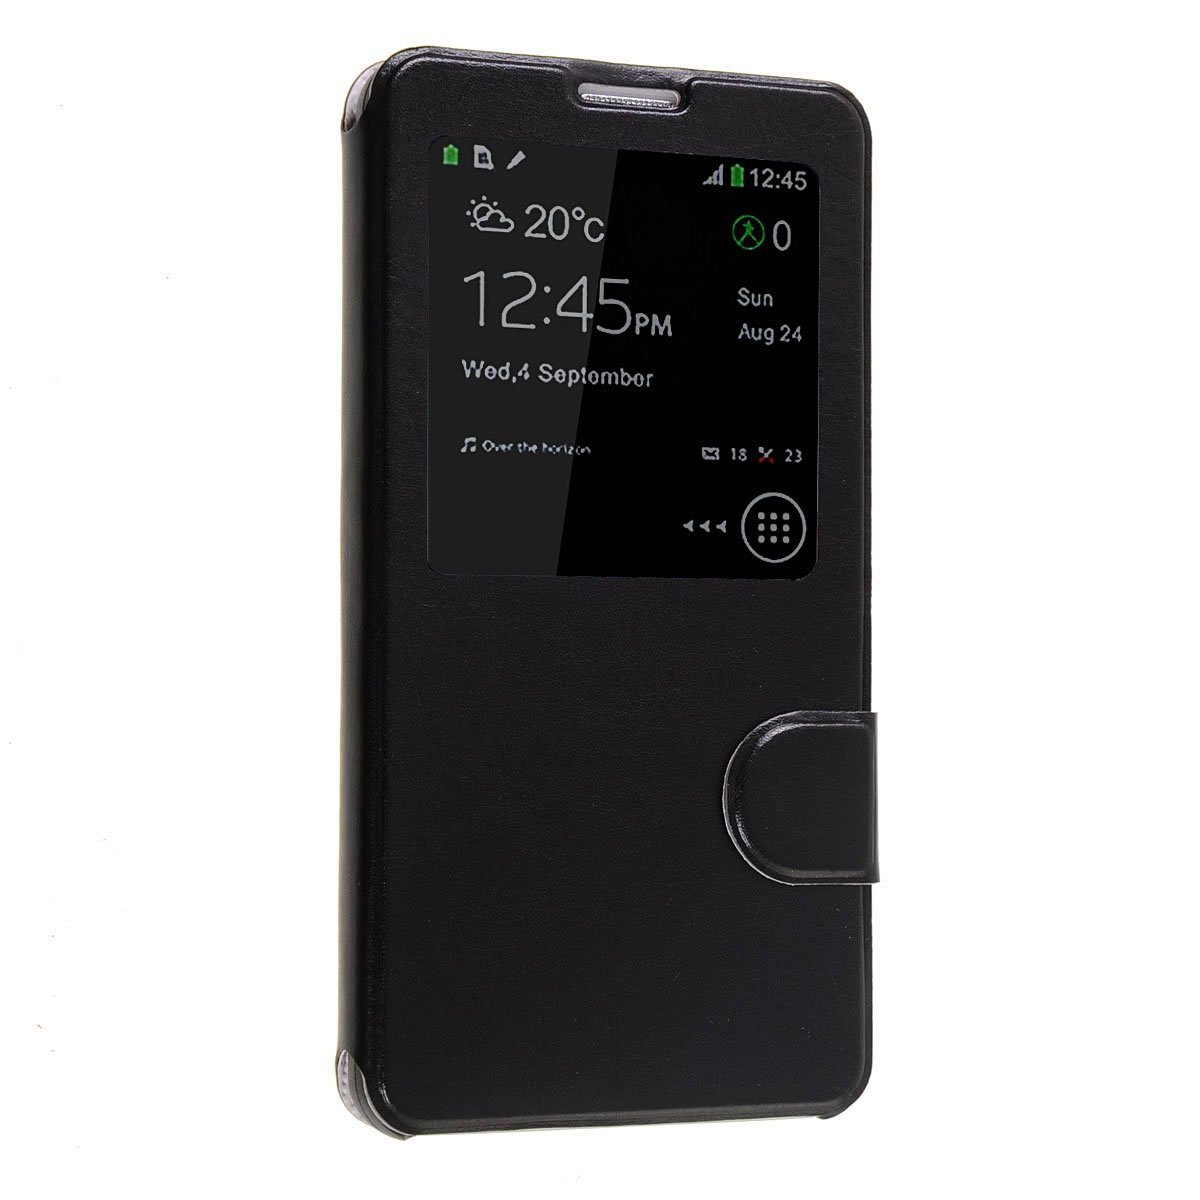 Okeler Hot Black S-View Flip Cover Leather Case